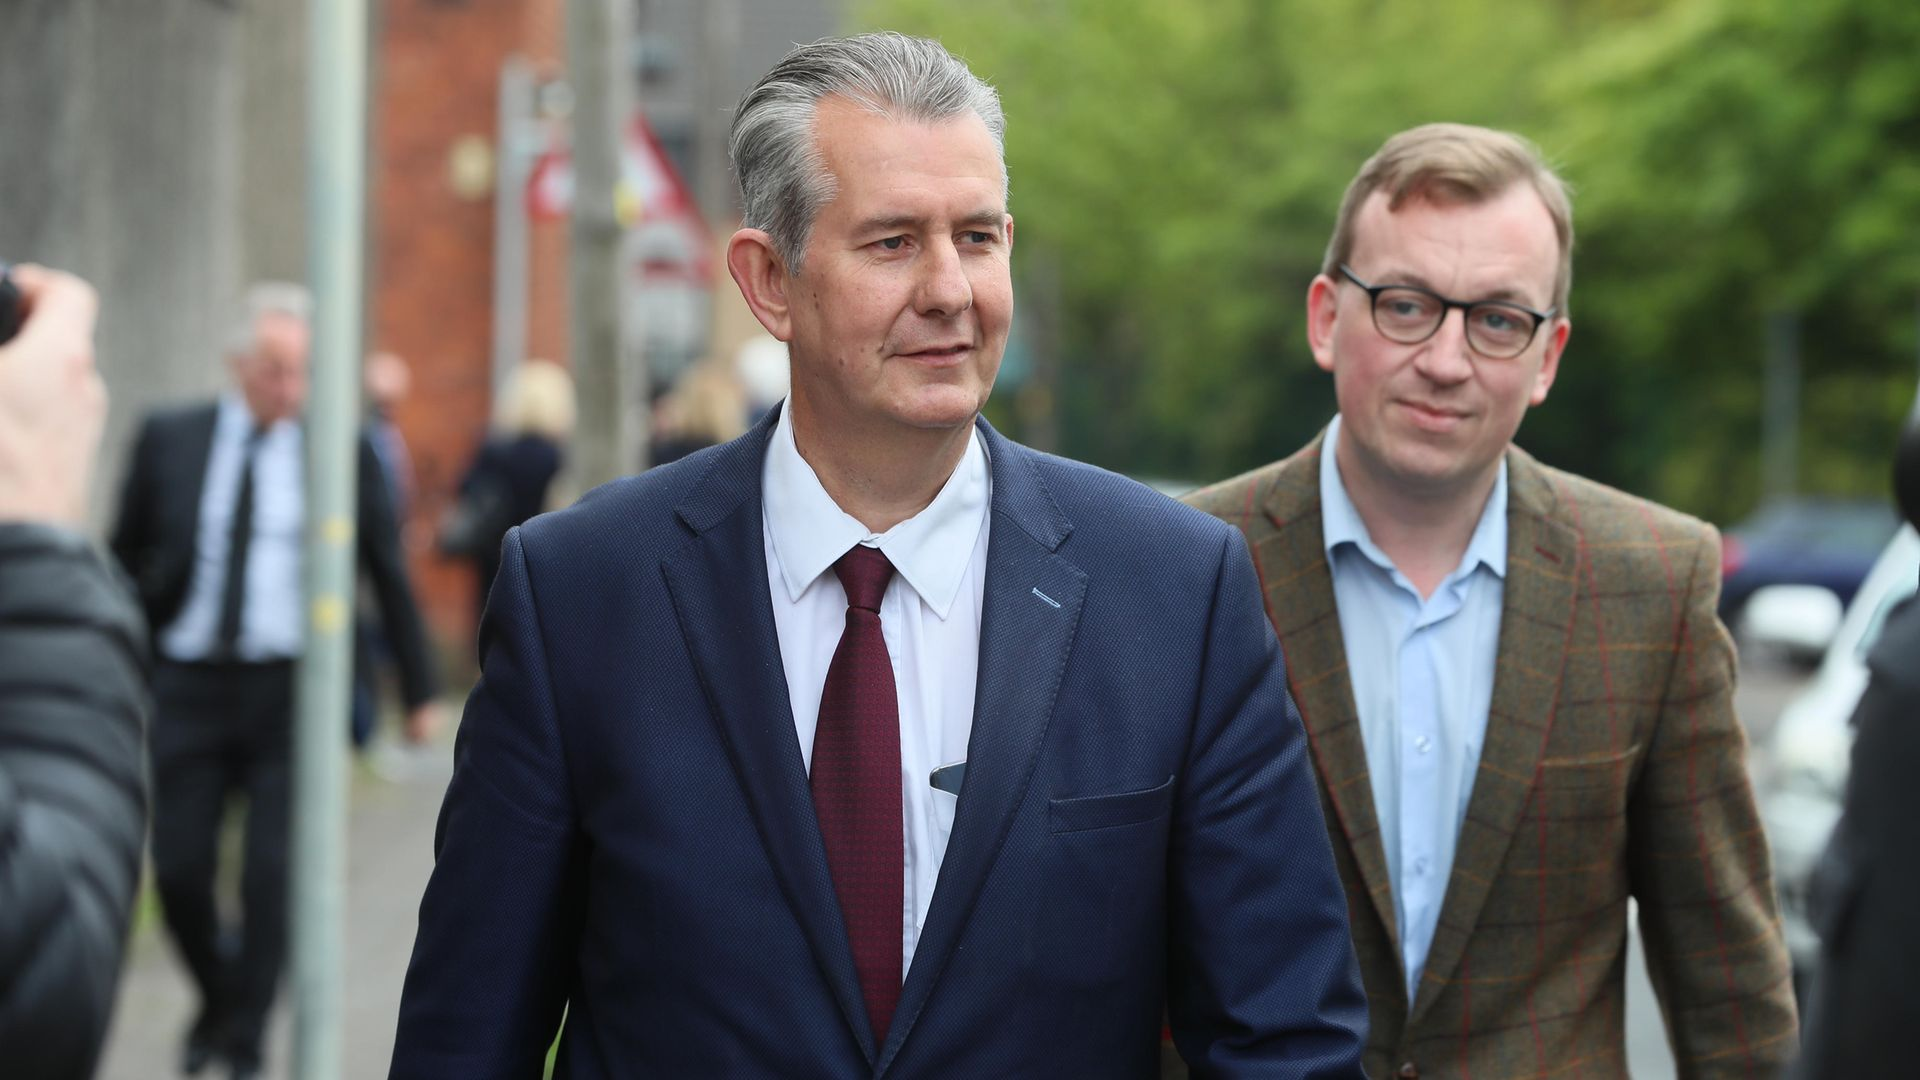 Edwin Poots (right) the Northern Ireland Minister of Agriculture, Environment, and Rural Affairs (DAERA) is followed by DUP MLA Christopher Stalford after leaving the Democratic Unionist Party (DUP) headquarters in Belfast following voting in the party's leadership election - Credit: PA